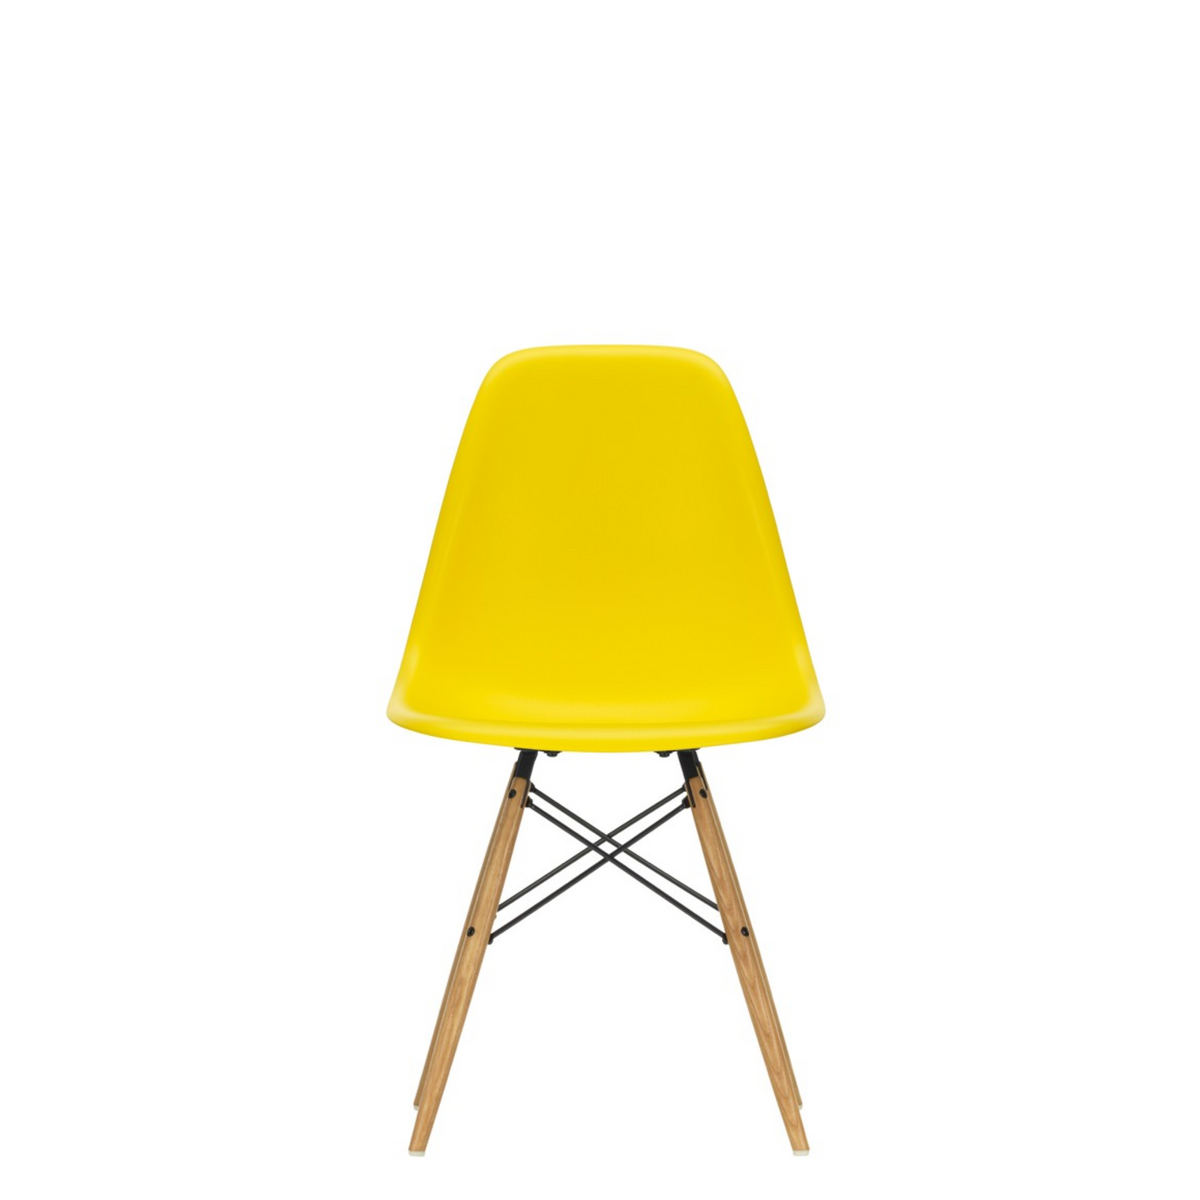 Vitra Eames DSW Plastic Side Chair Sunlight 26